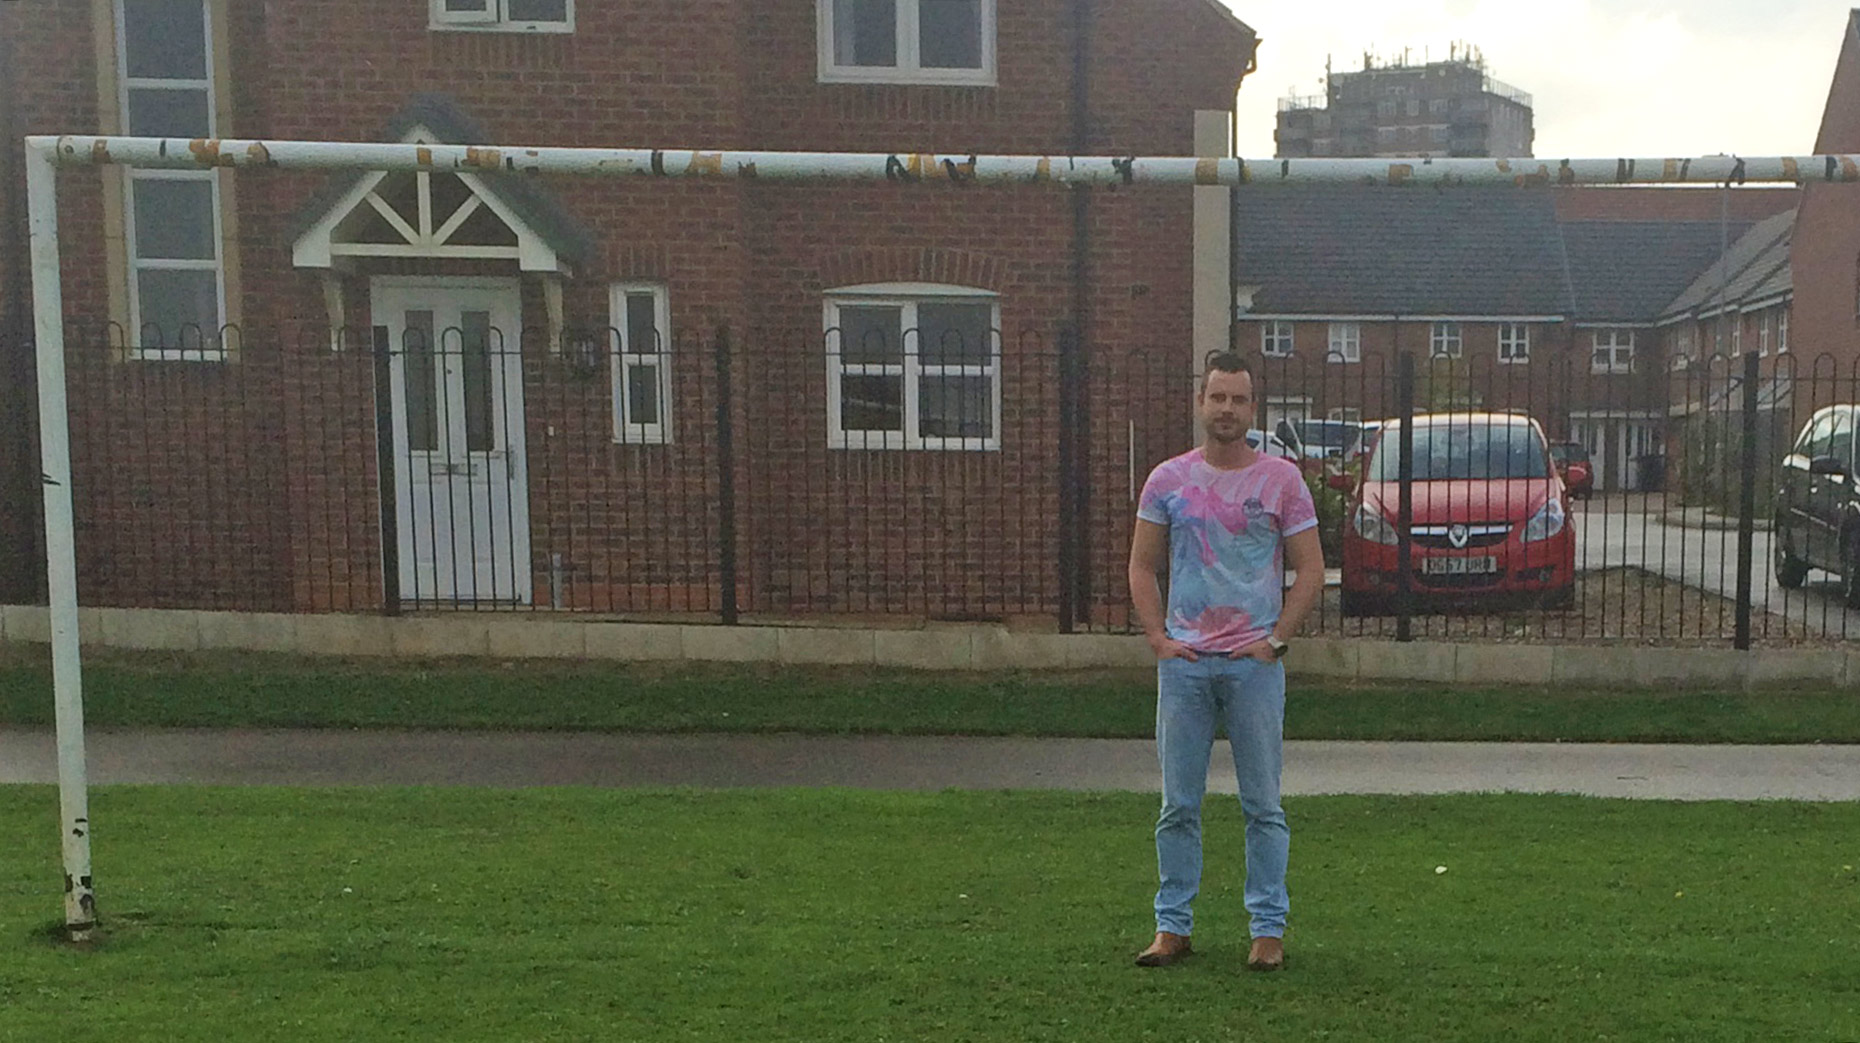 Daniel's house off Nene Road is now only metres away from the mouth of the goal.